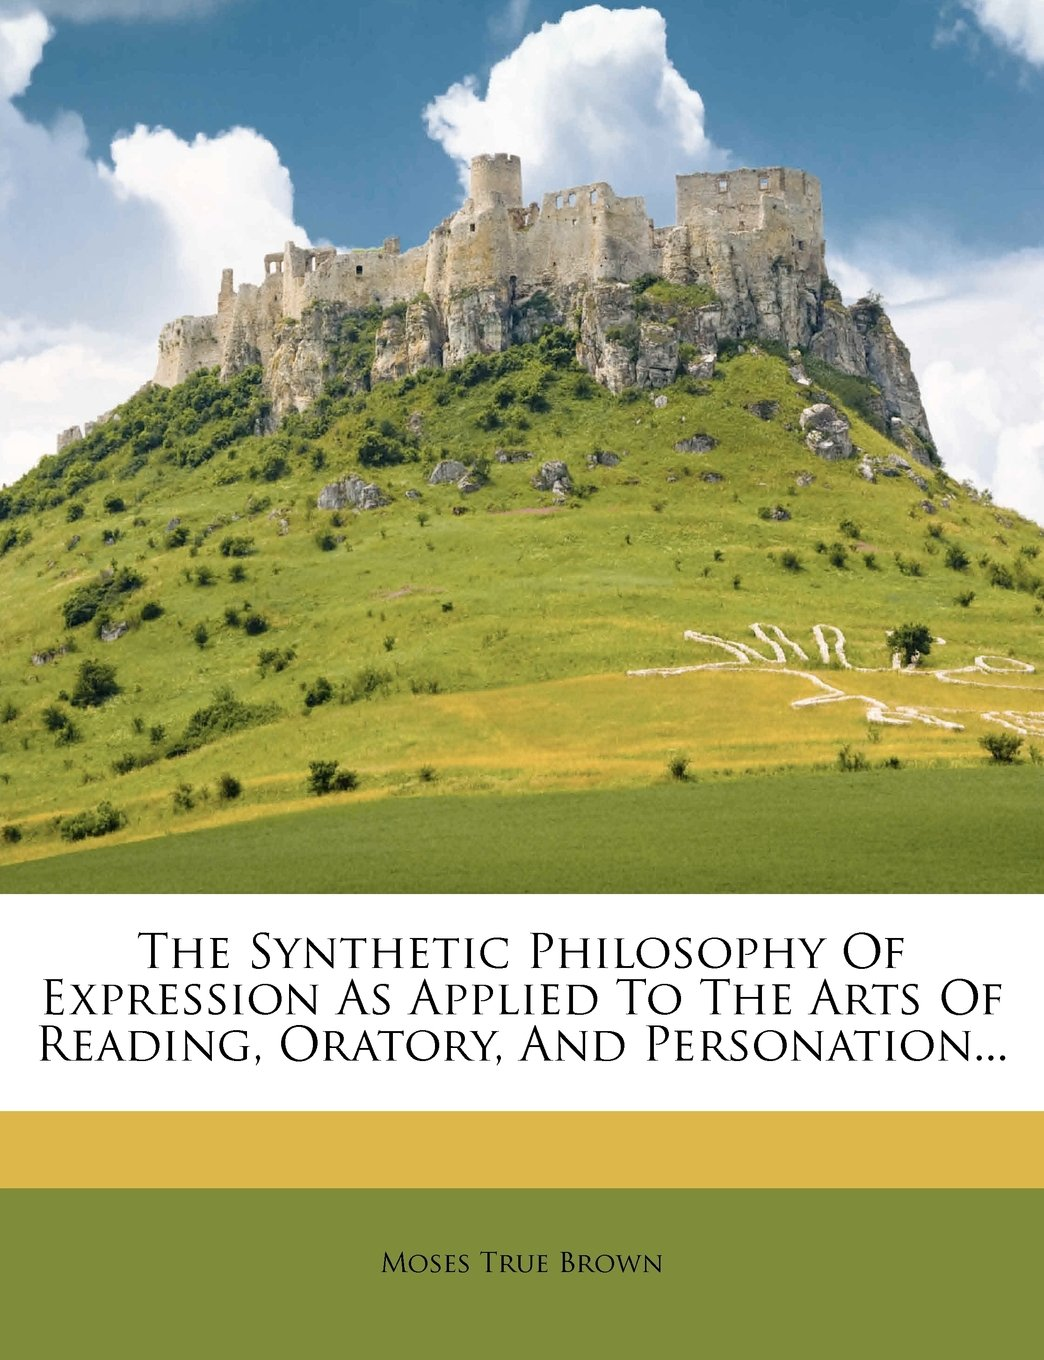 The Synthetic Philosophy Of Expression As Applied To The Arts Of Reading, Oratory, And Personation... pdf